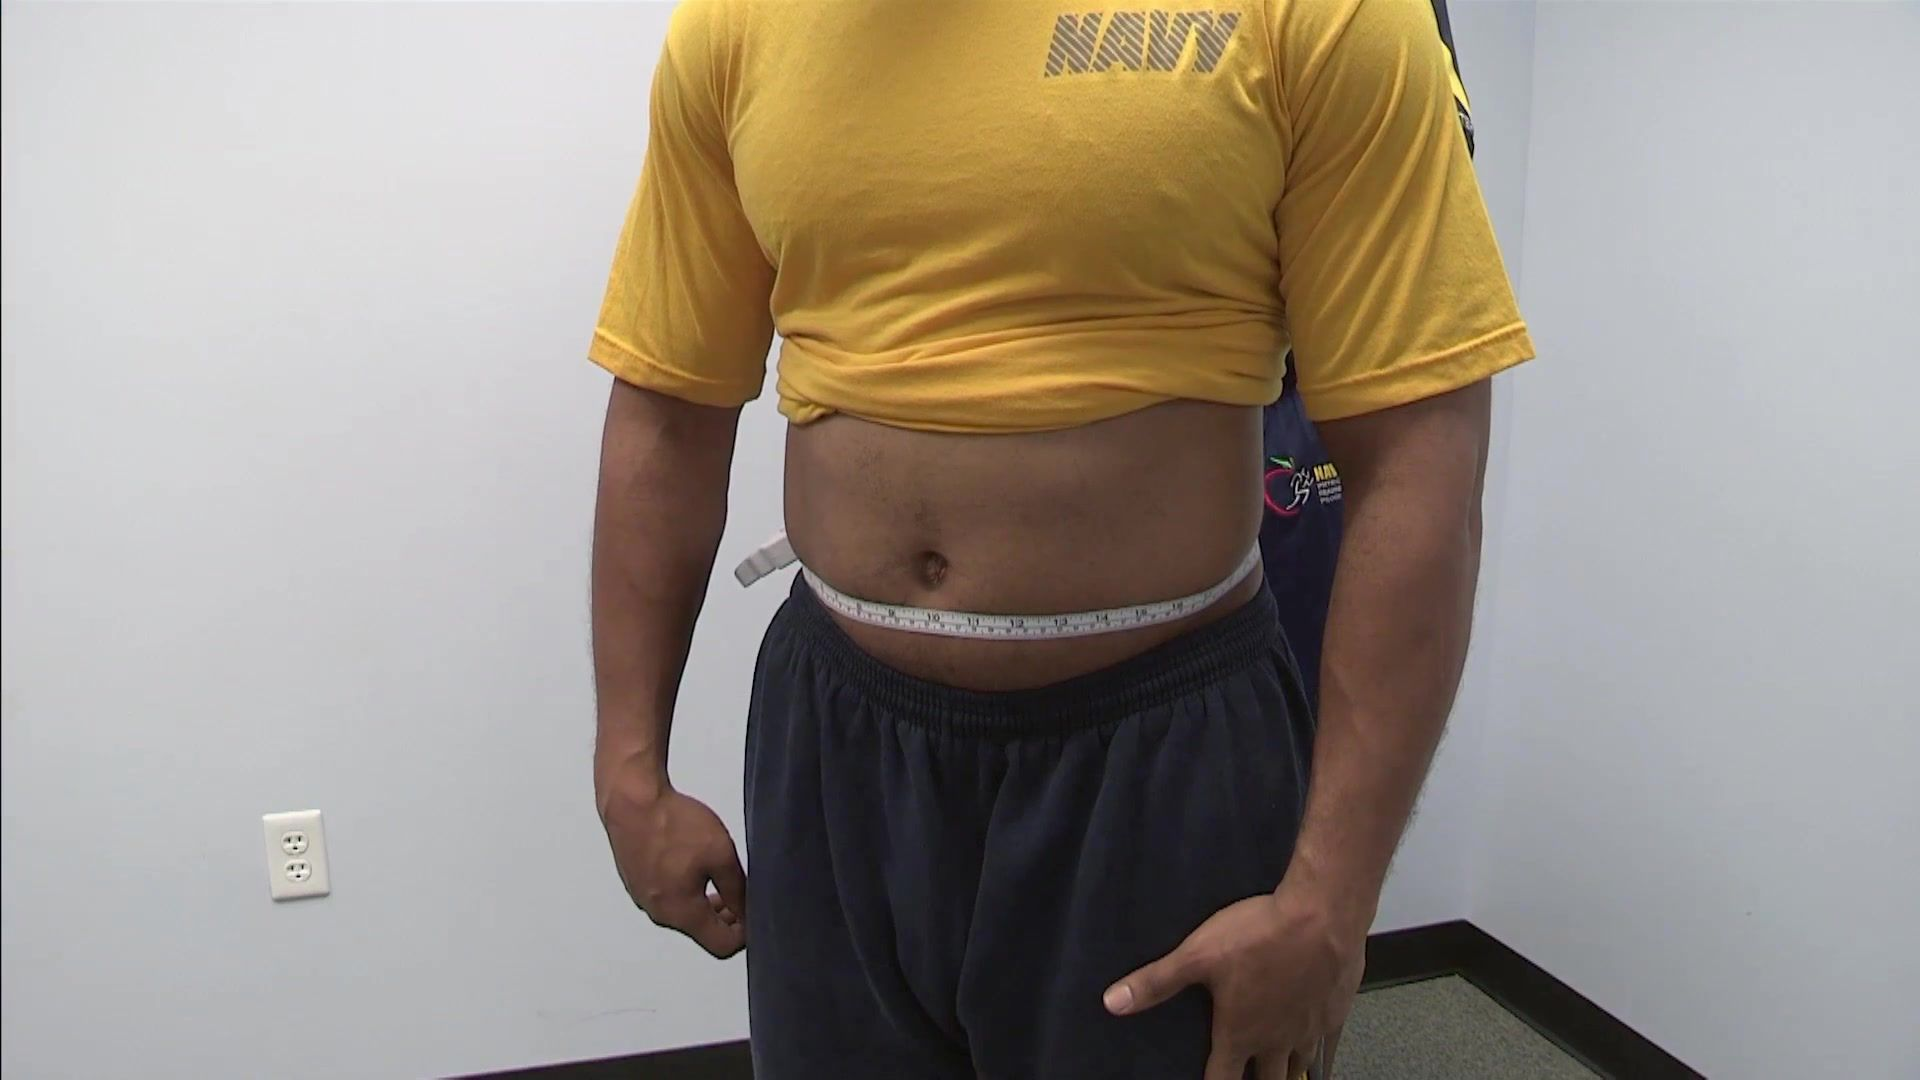 Body fat measurement system in the military nvjuhfo Images